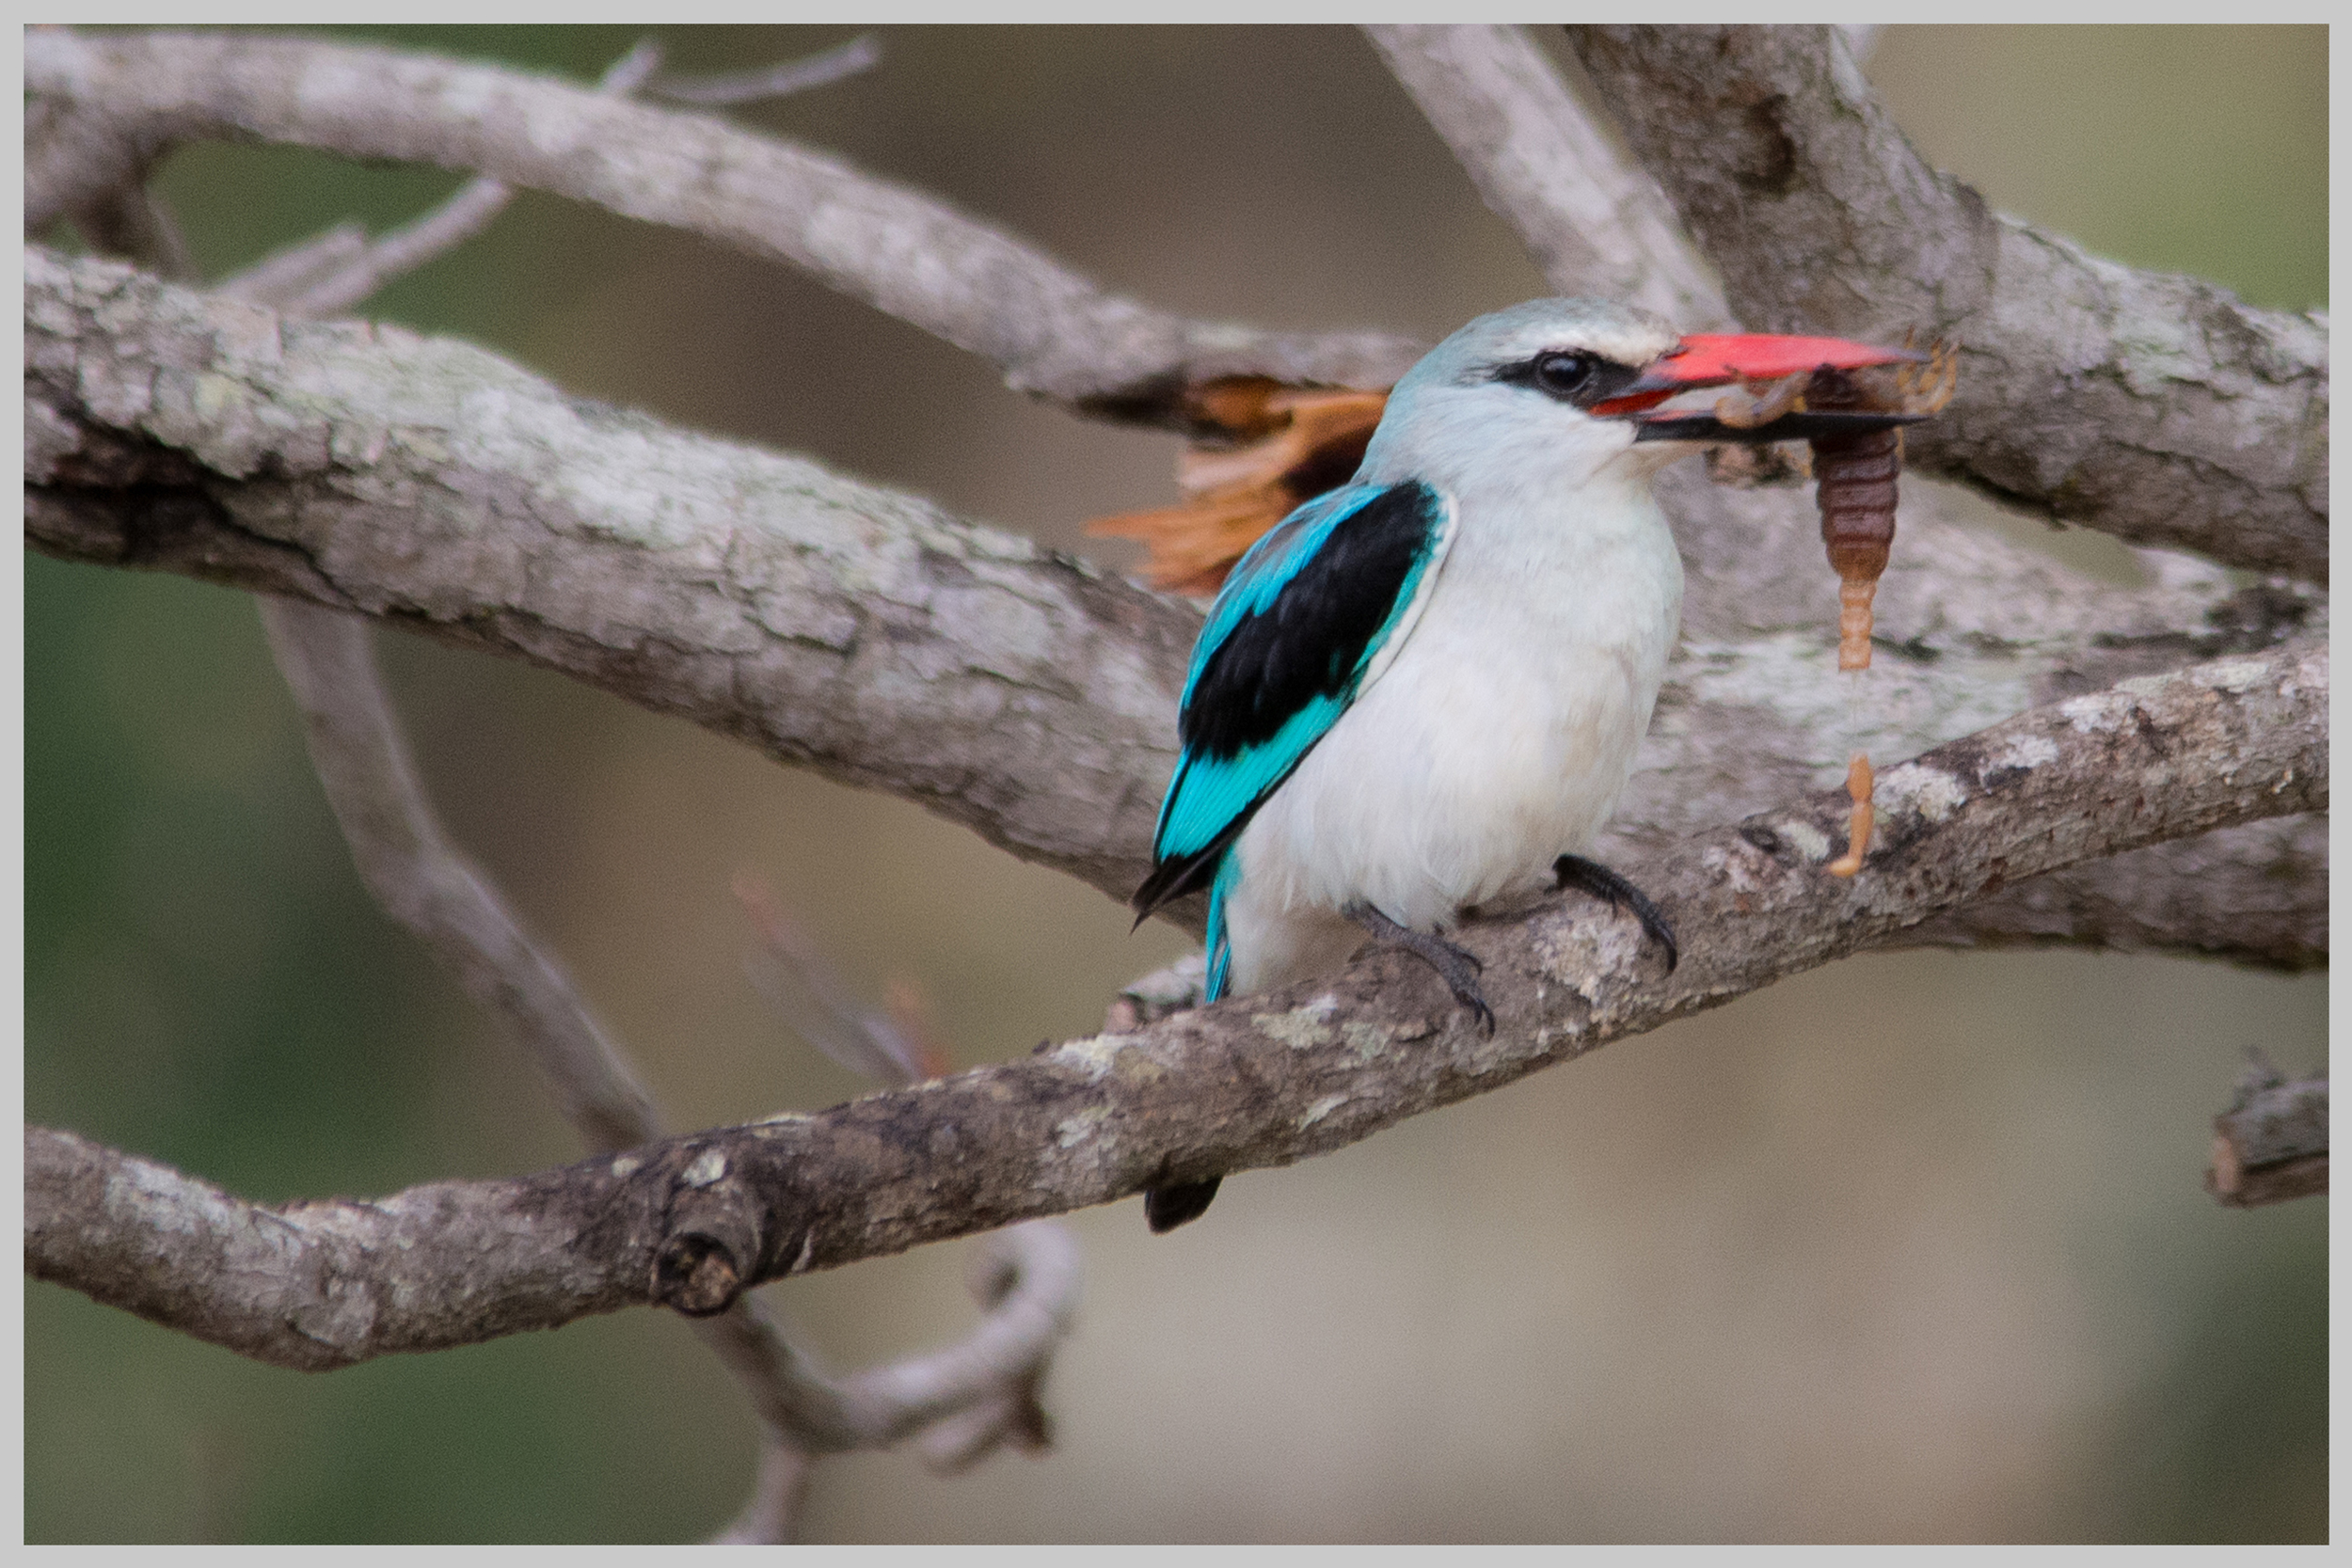 Woodland Kingfisher eating a scorpion